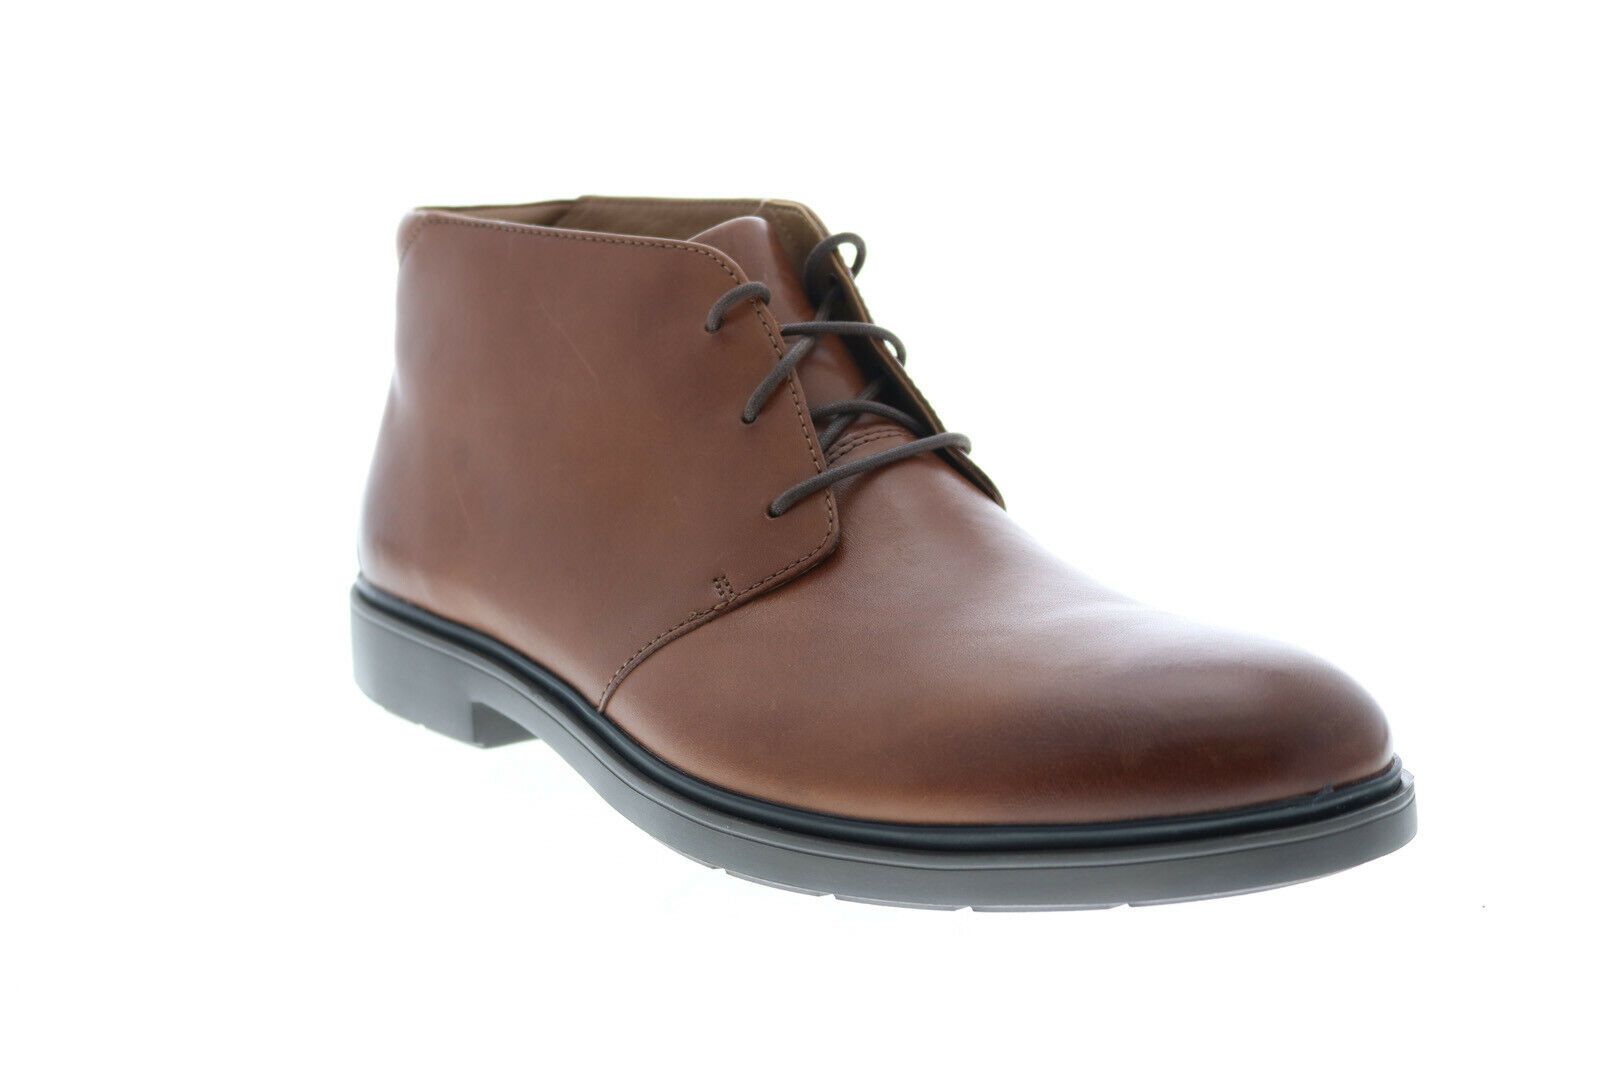 Clarks Un Tailor Mid 26144678 Mens Brown Leather Lace Up Chukkas Boots